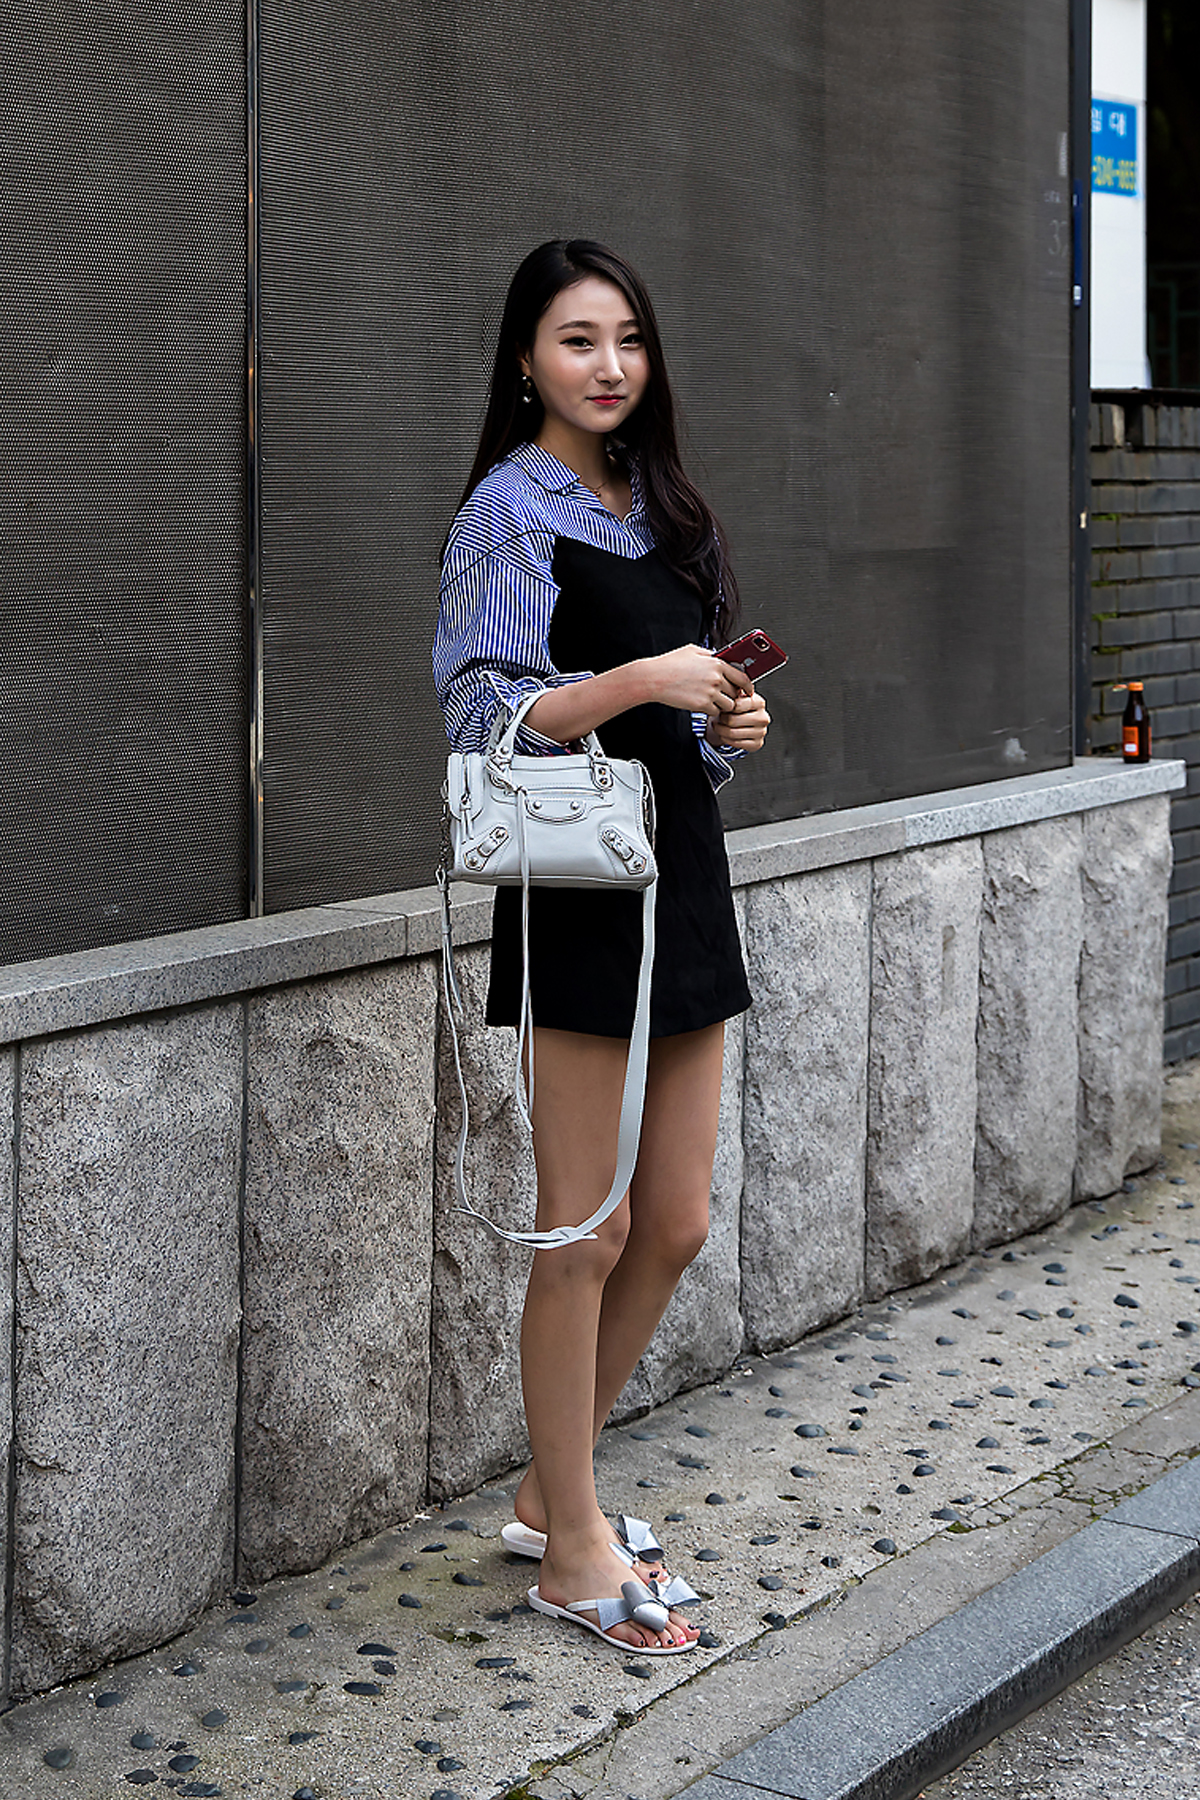 Park Jisoo, Street Fashion 2017 in Seoul.jpg